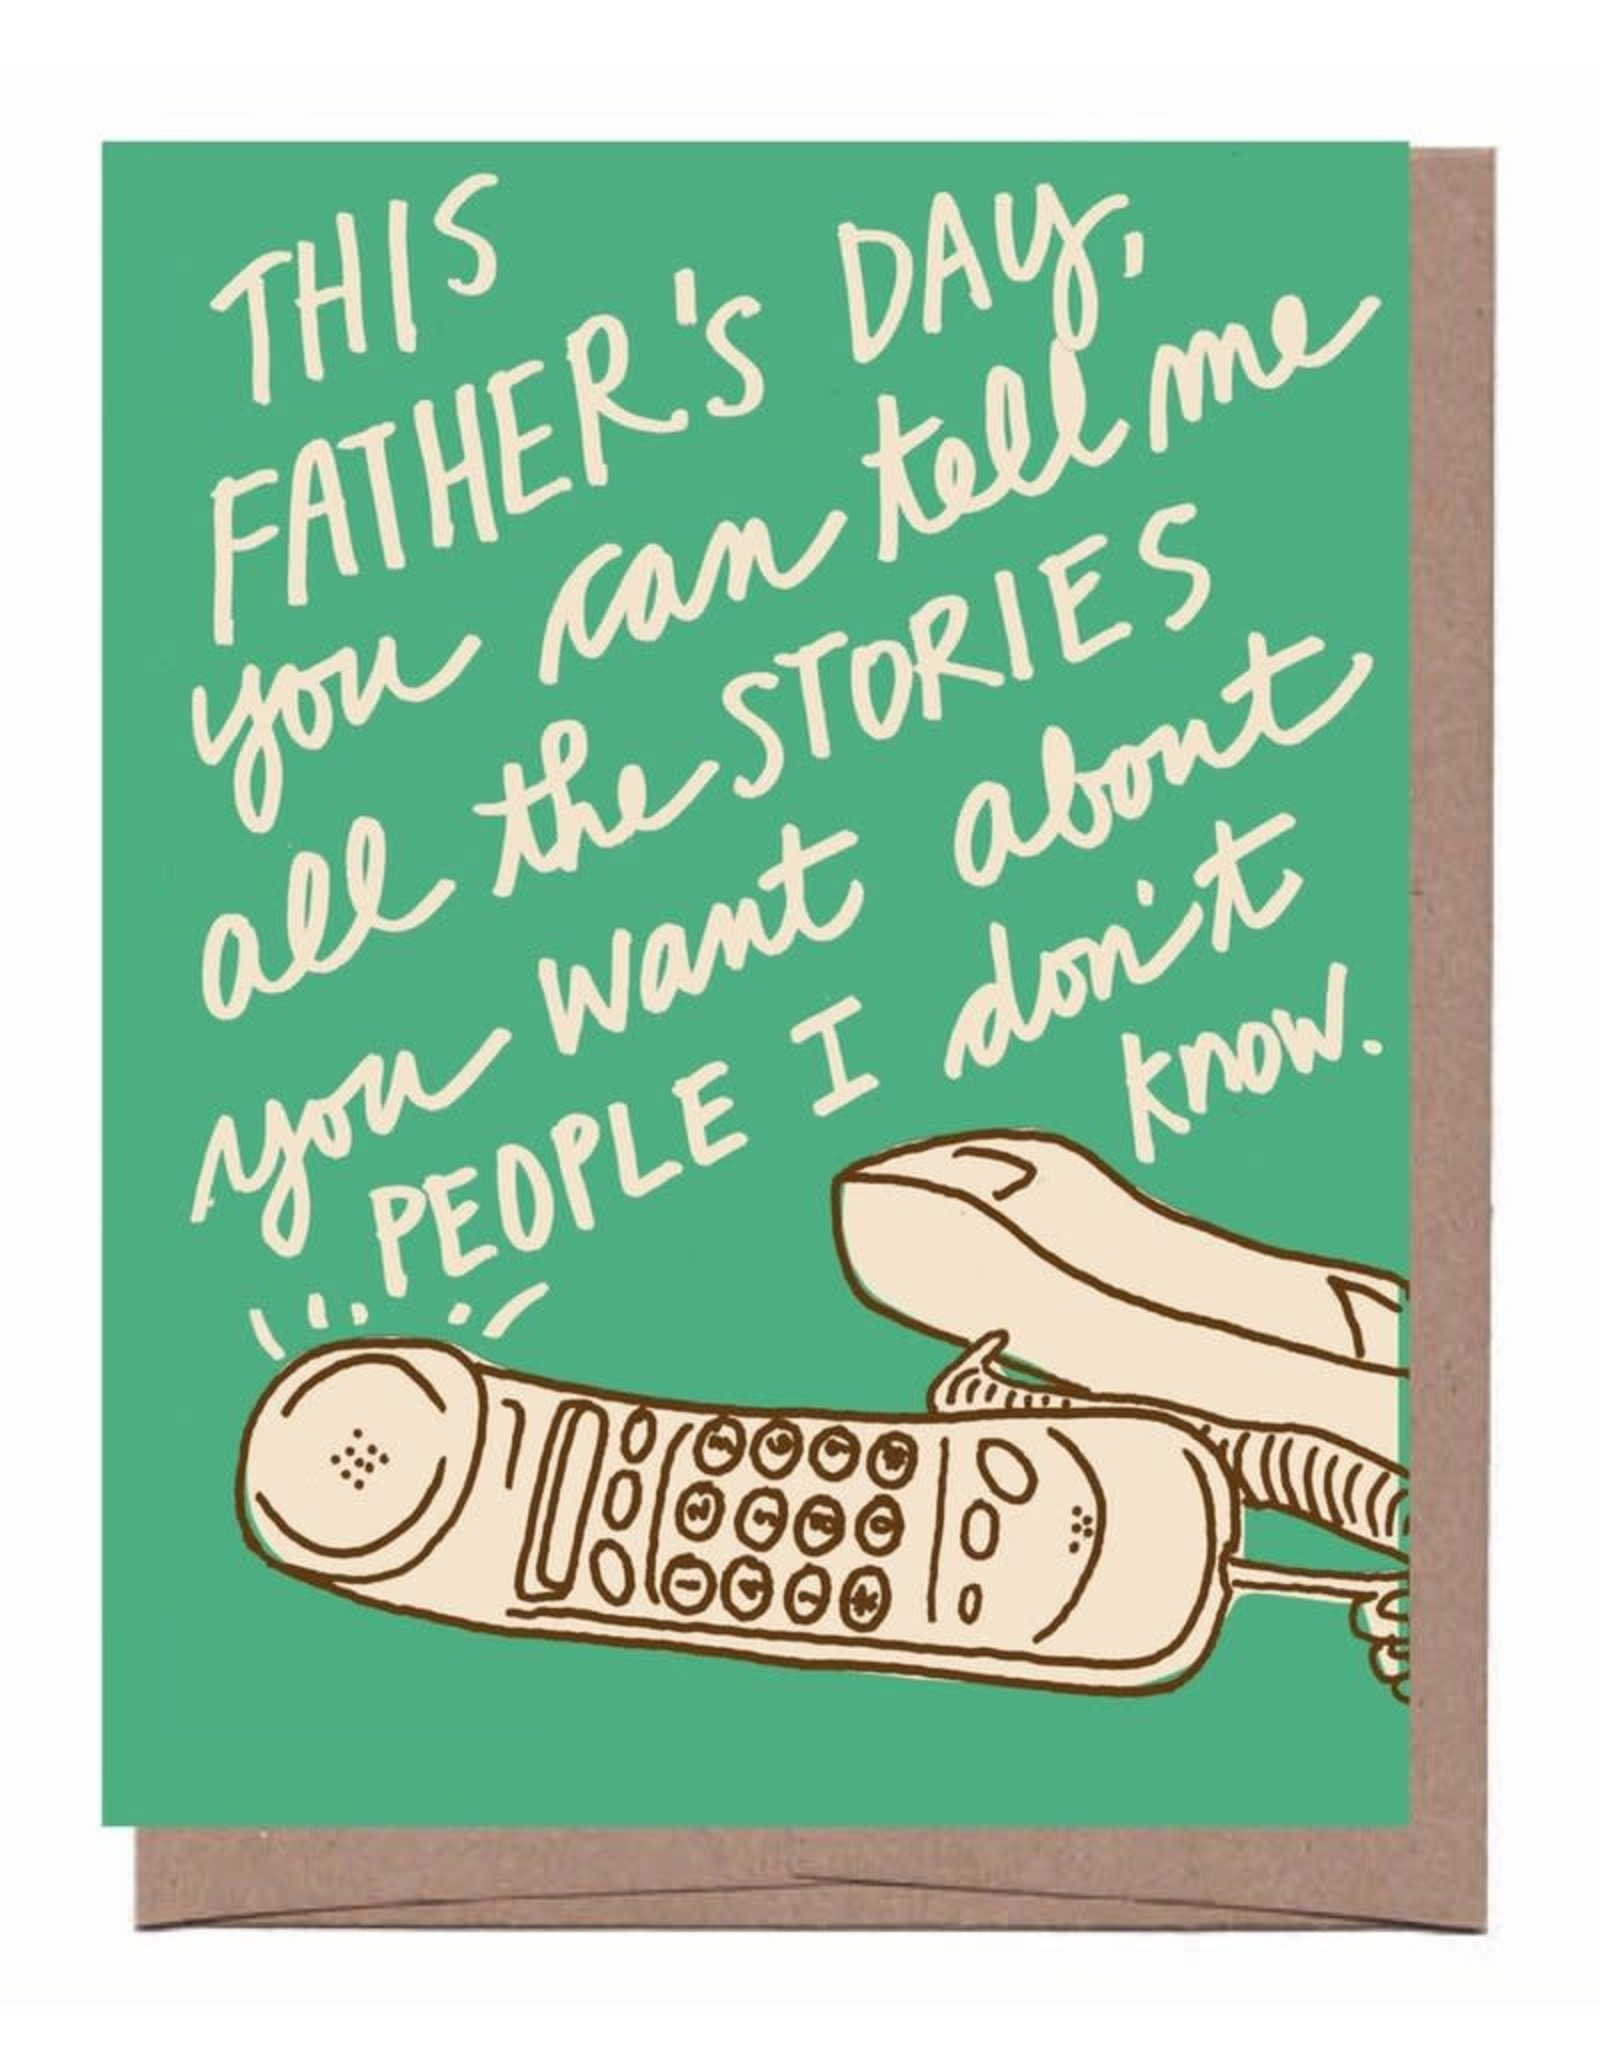 Stories About People I Don't Know Father's Day Greeting Card